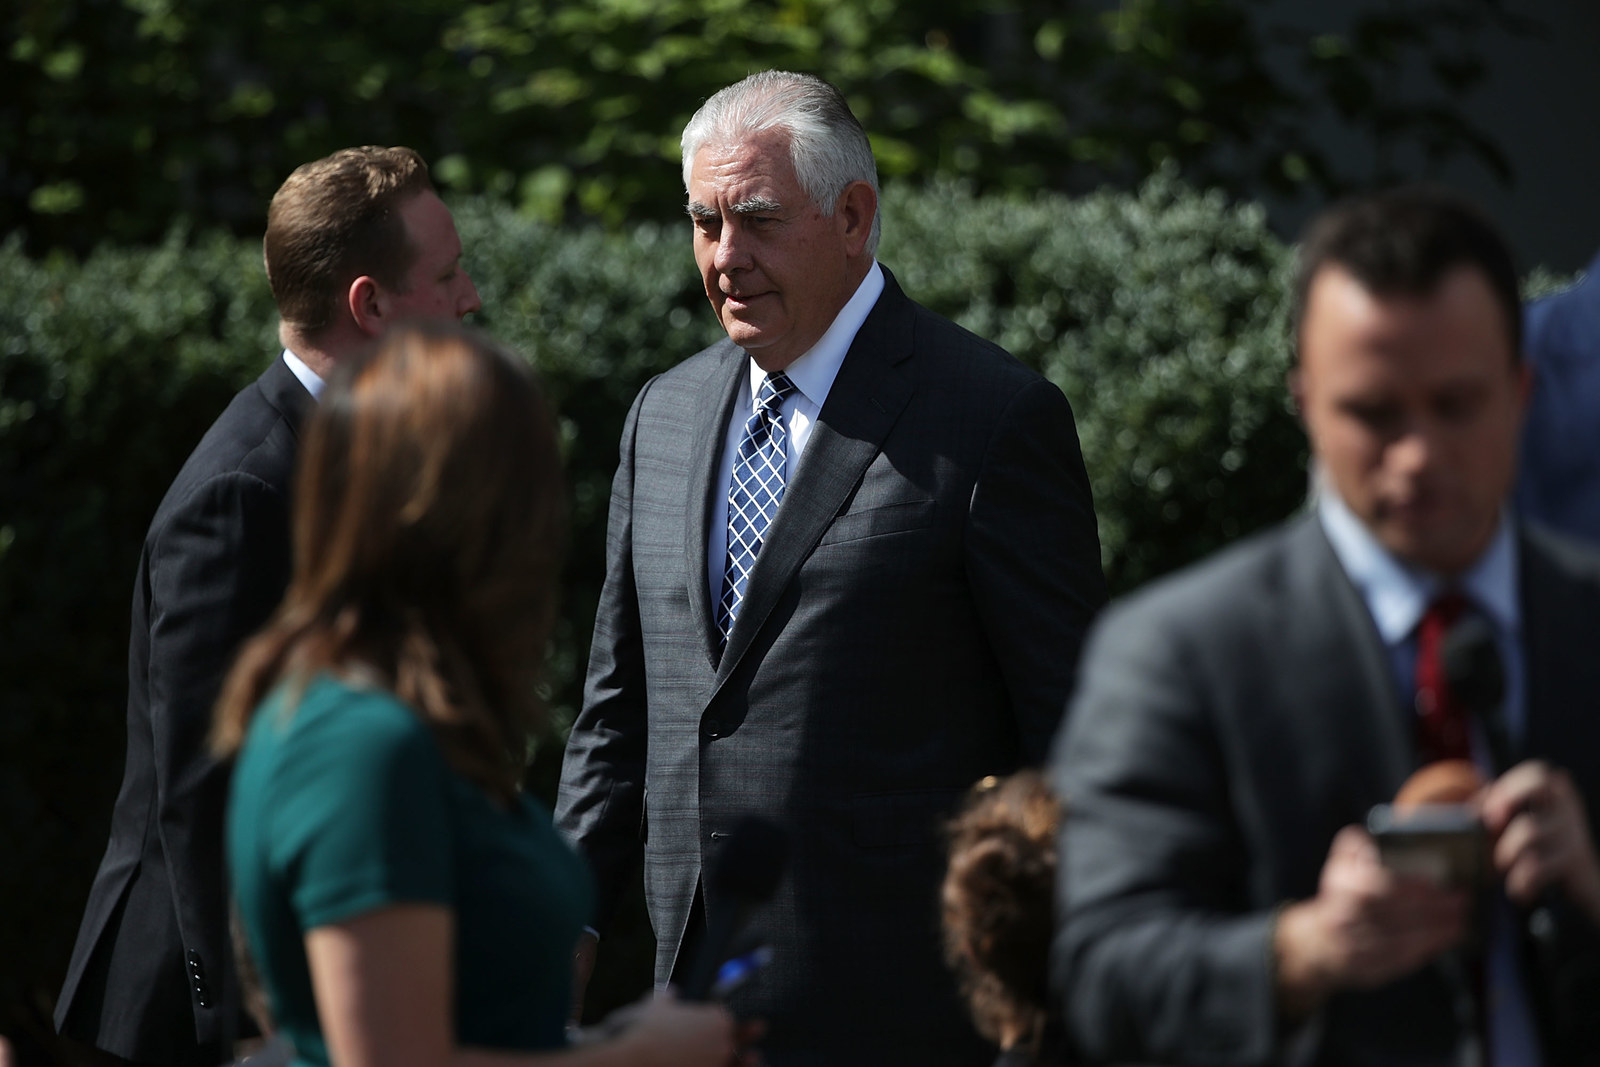 Rex Tillerson Just Got Fired From The State Department After A Troubled Tenure